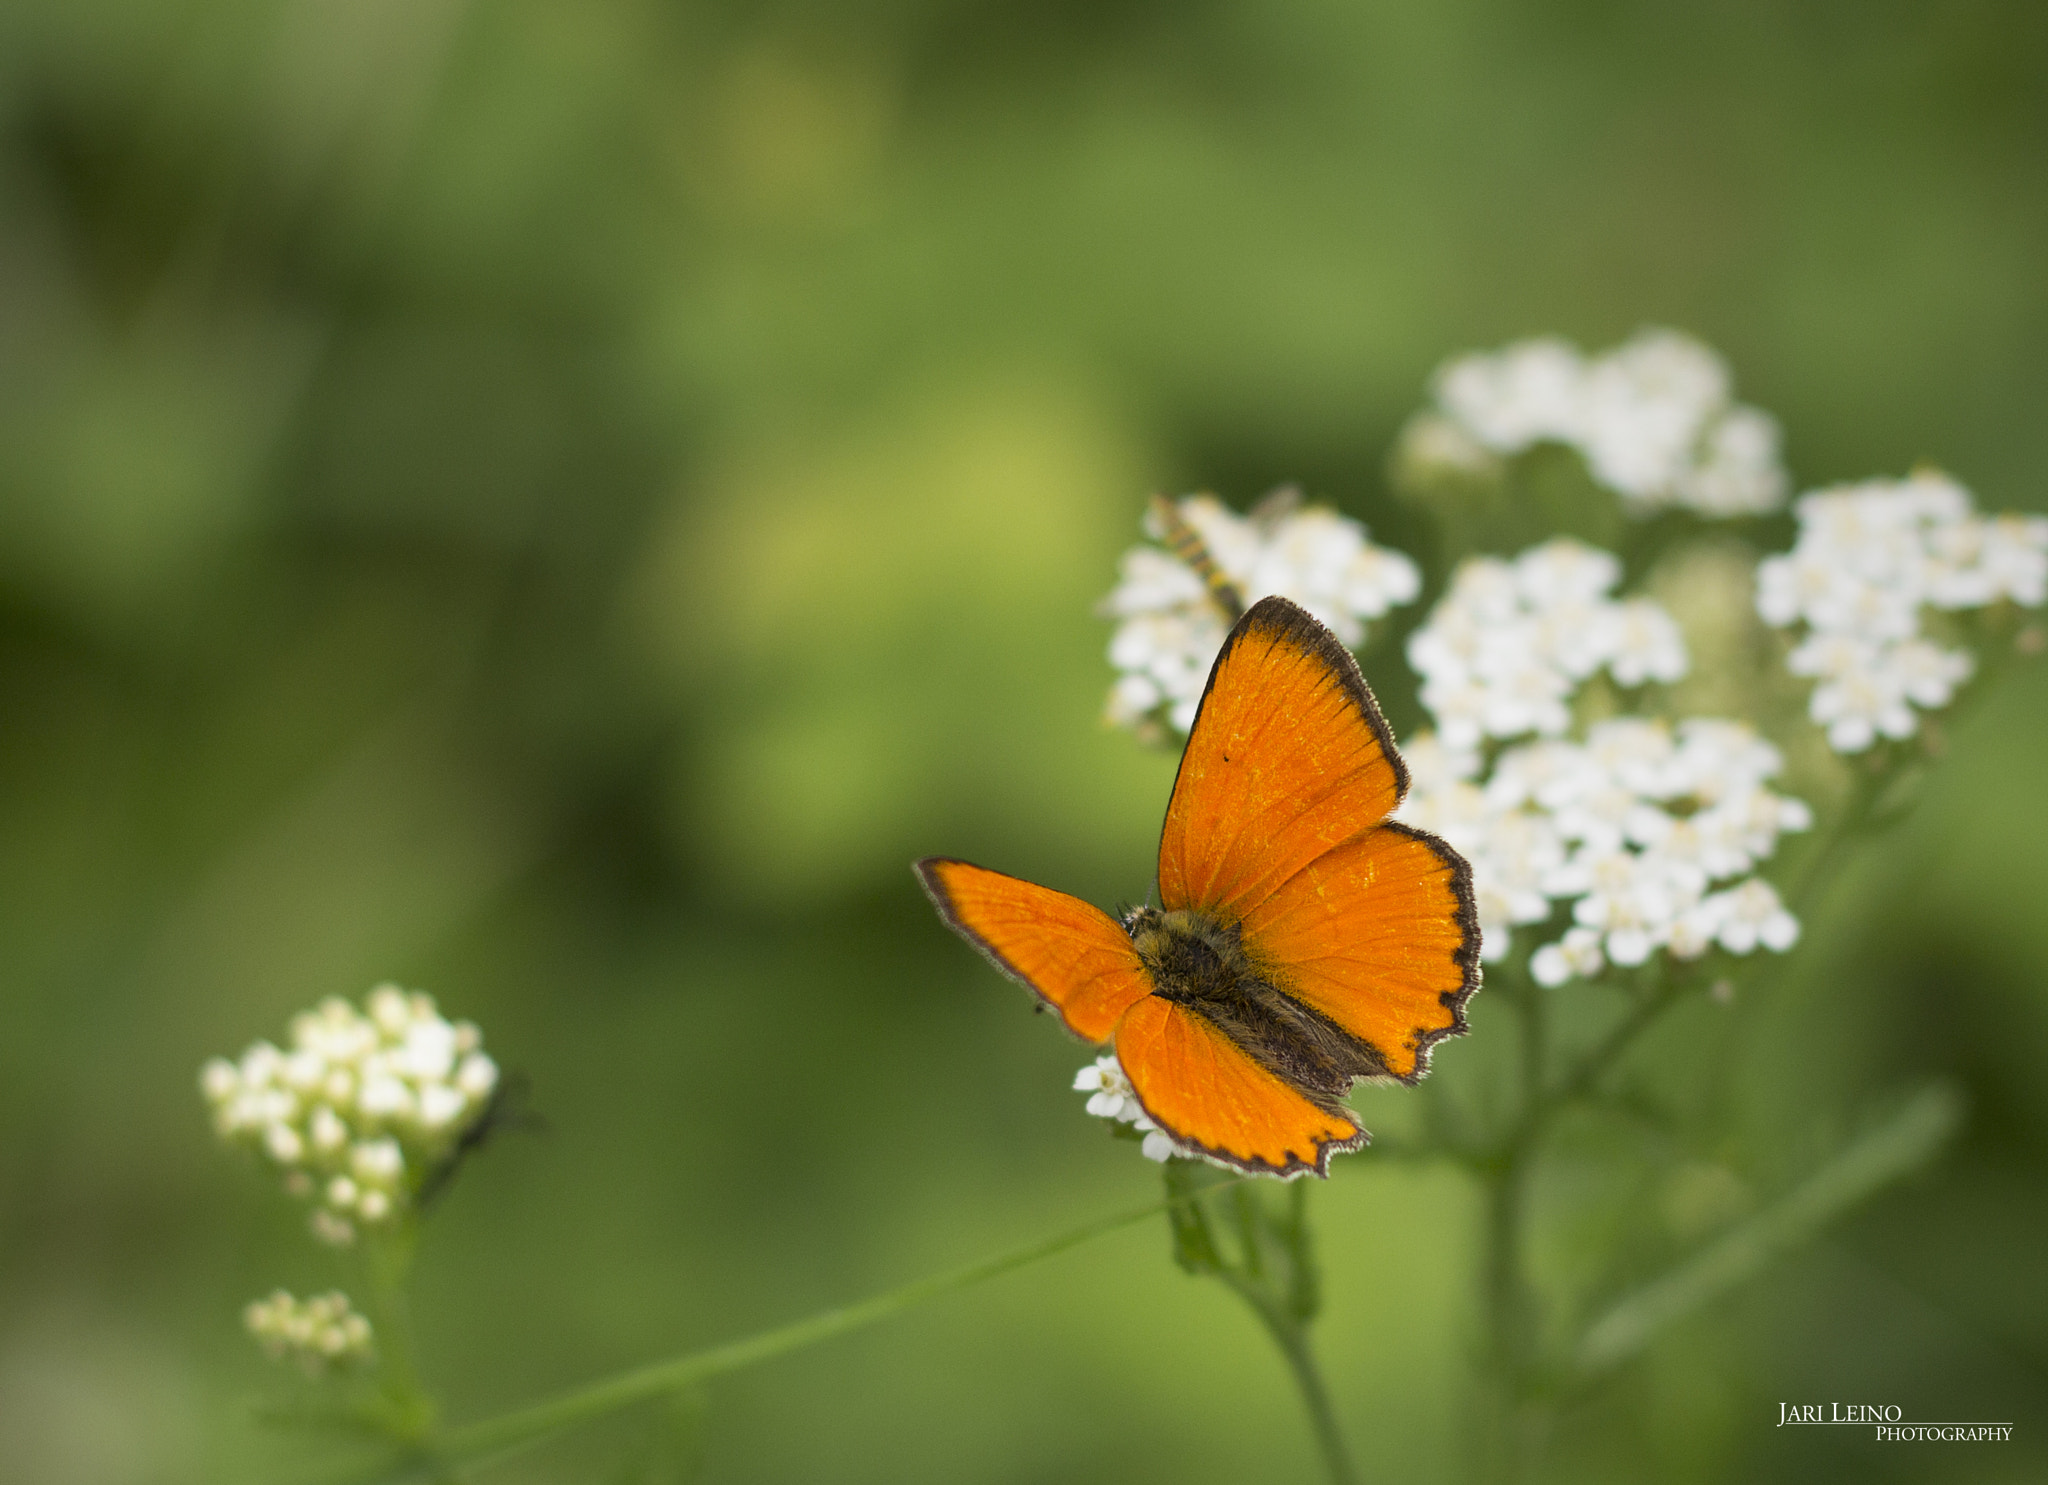 Photograph Butterfly by Jari Redsven on 500px